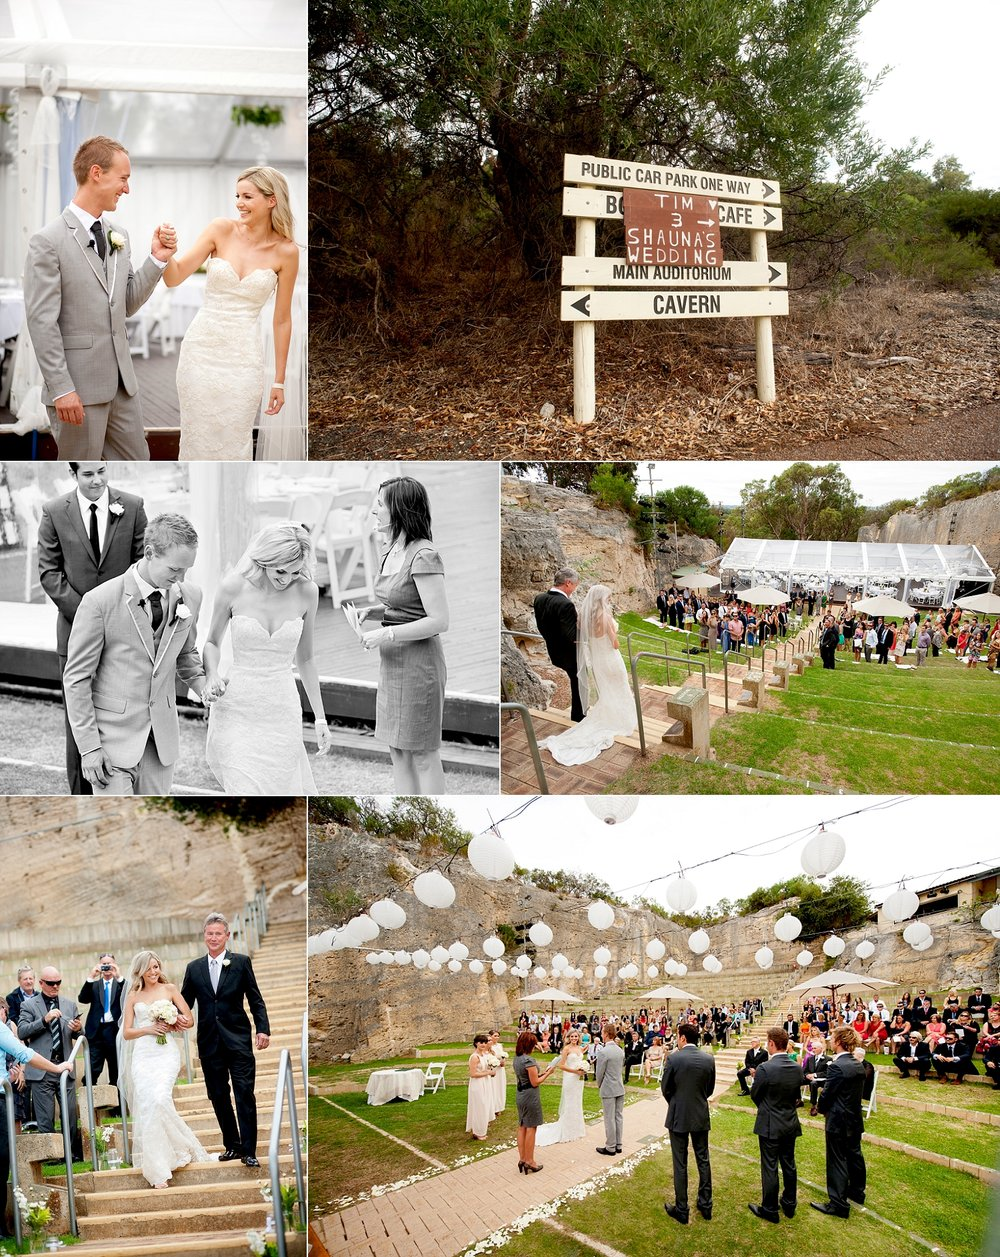 quarry amphitheatre perth wedding ceremony